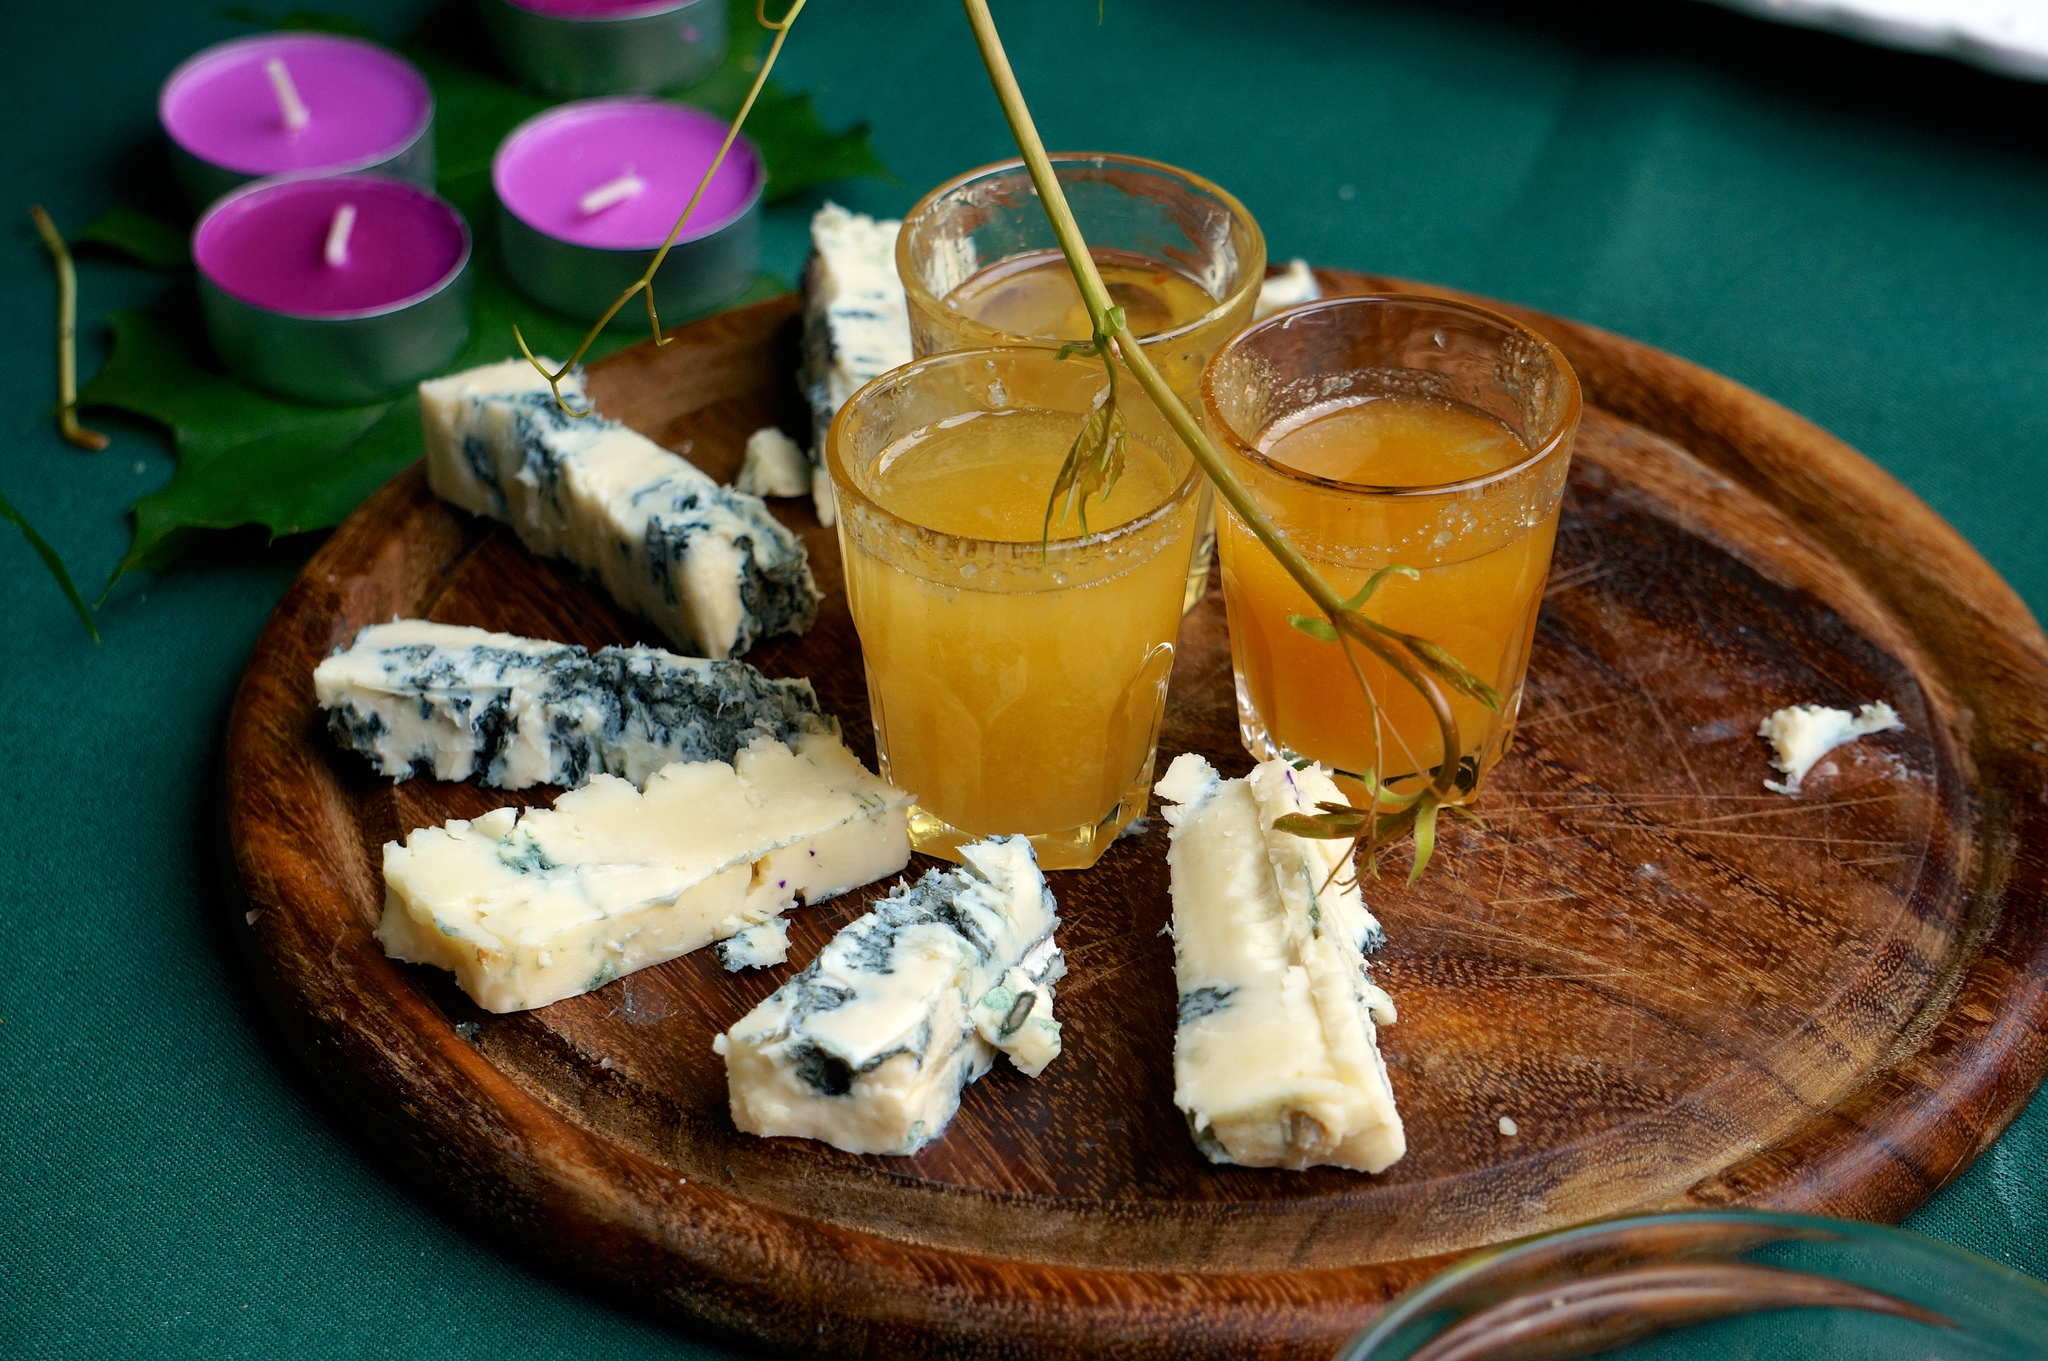 Gorgonzola with honey